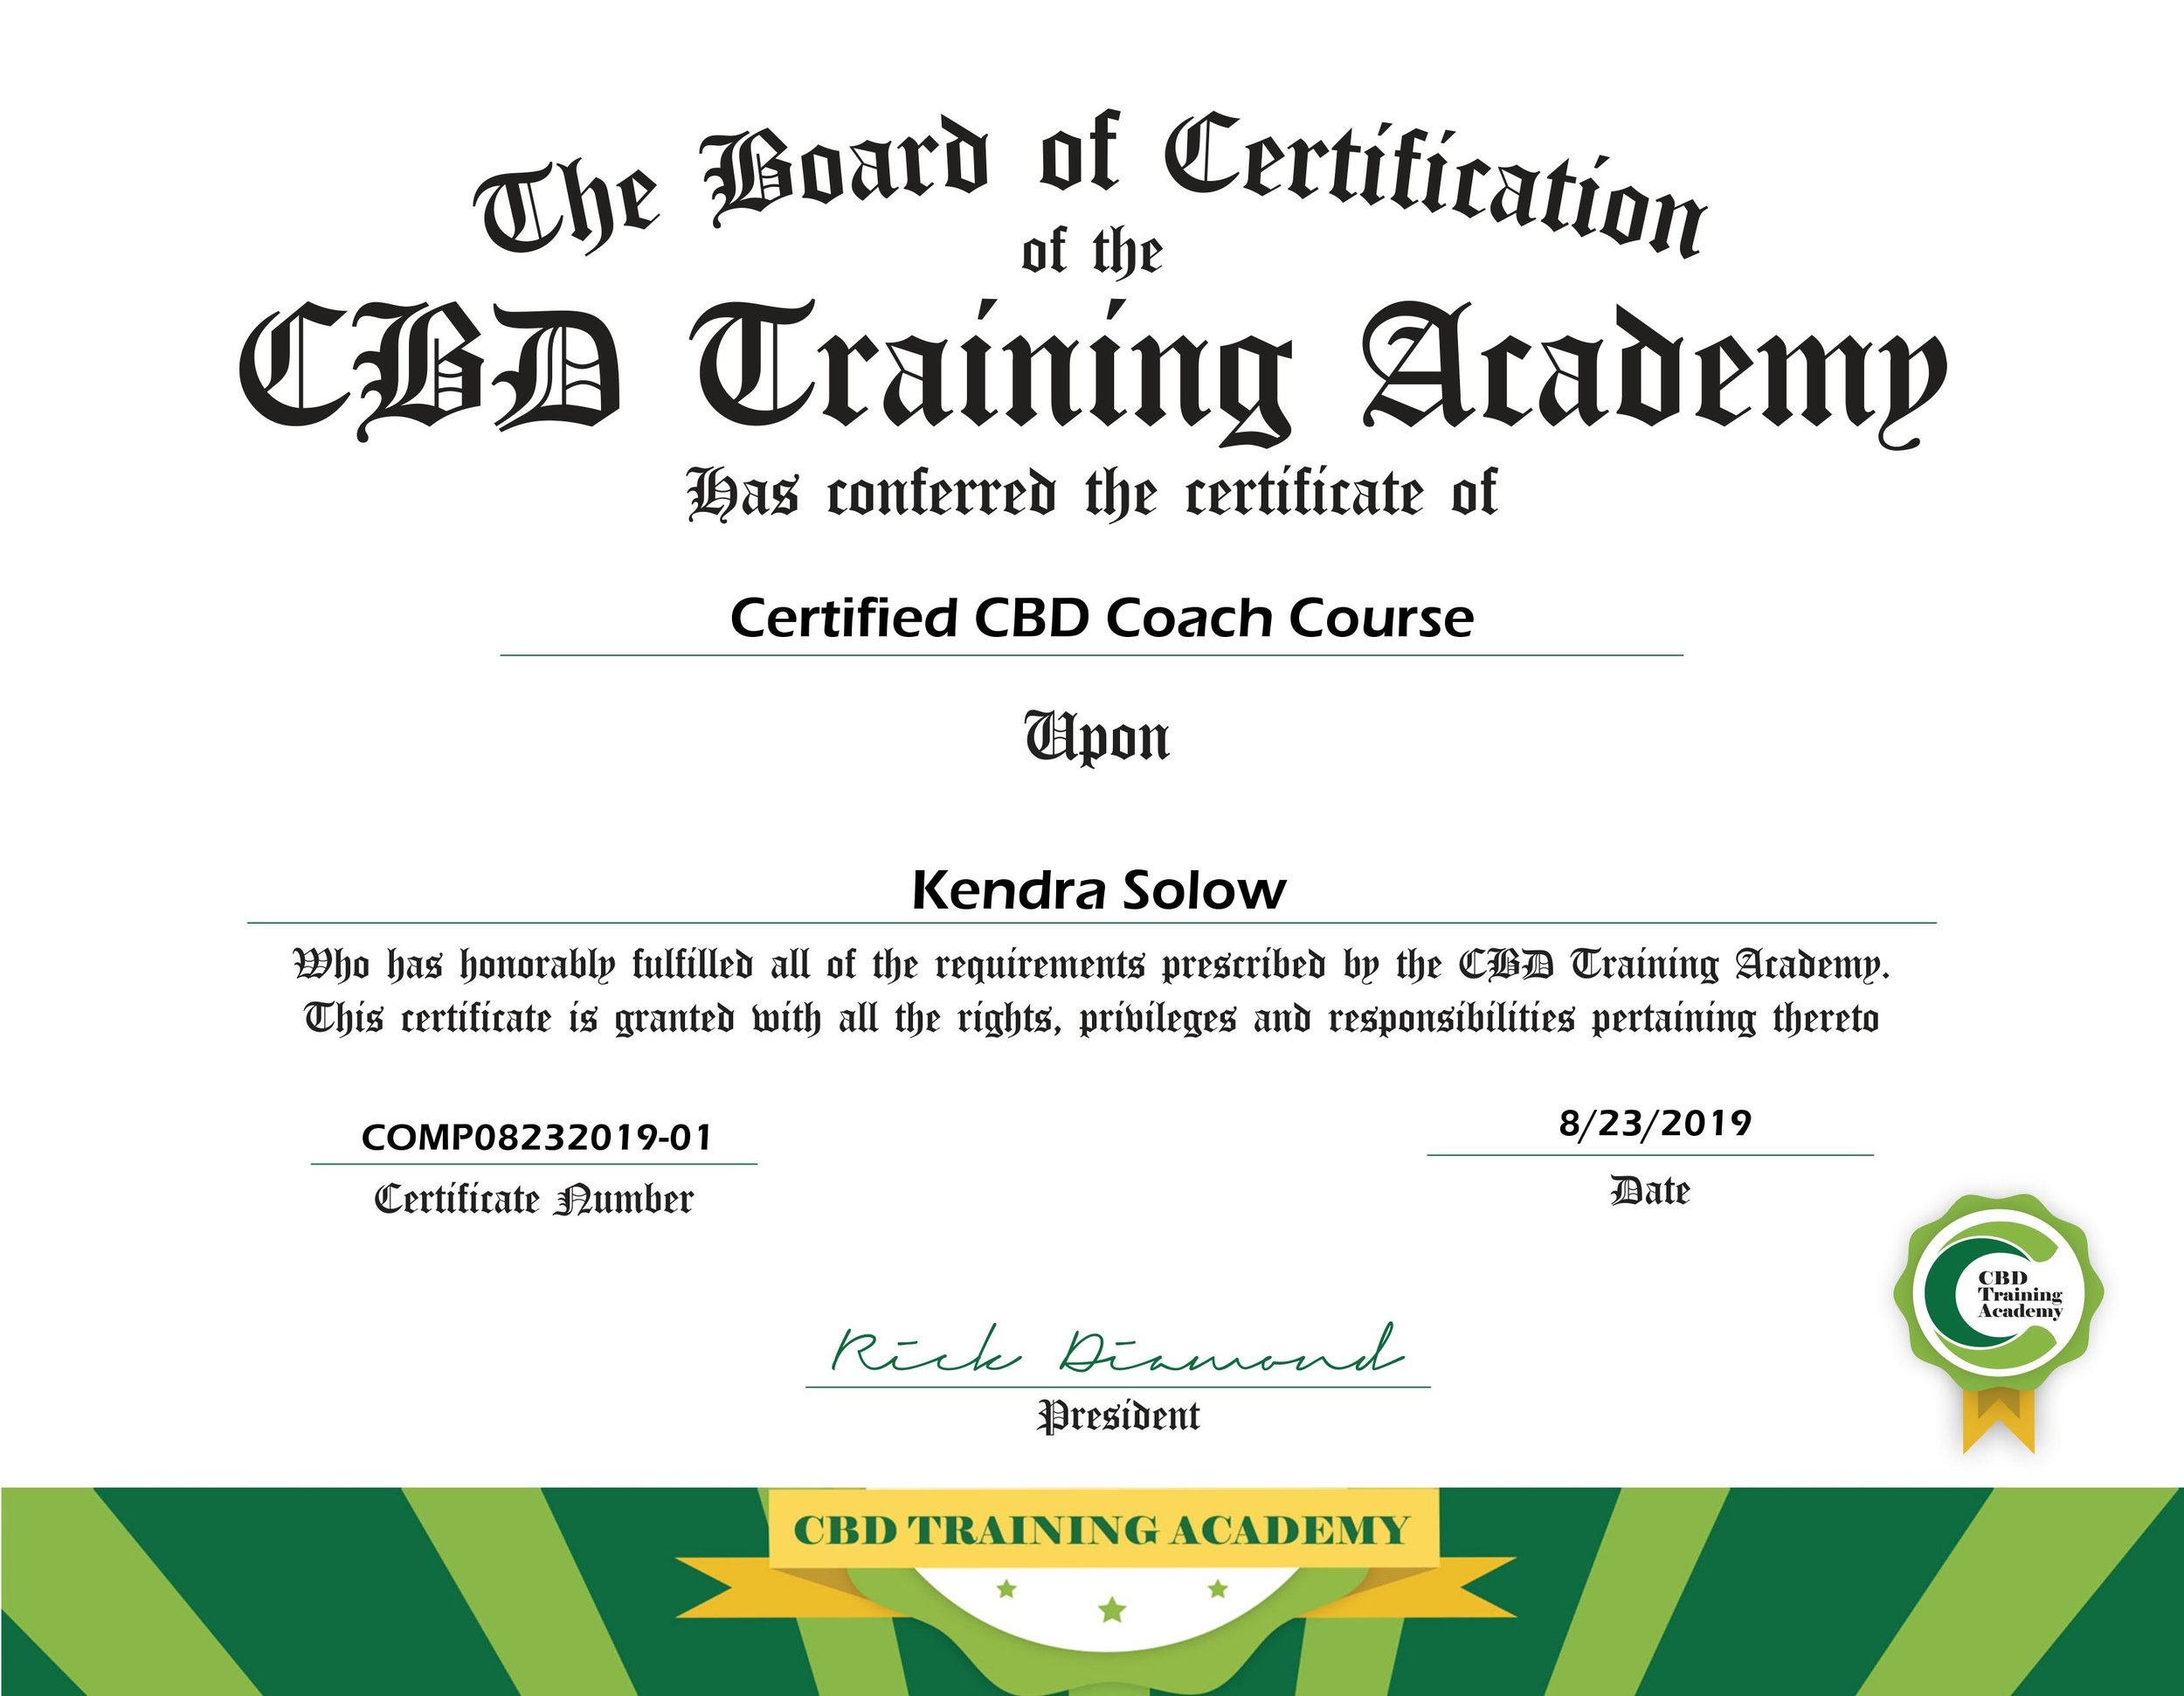 Certified CBD Coach. - Learn more about Kendra, and her holistic health journey here.